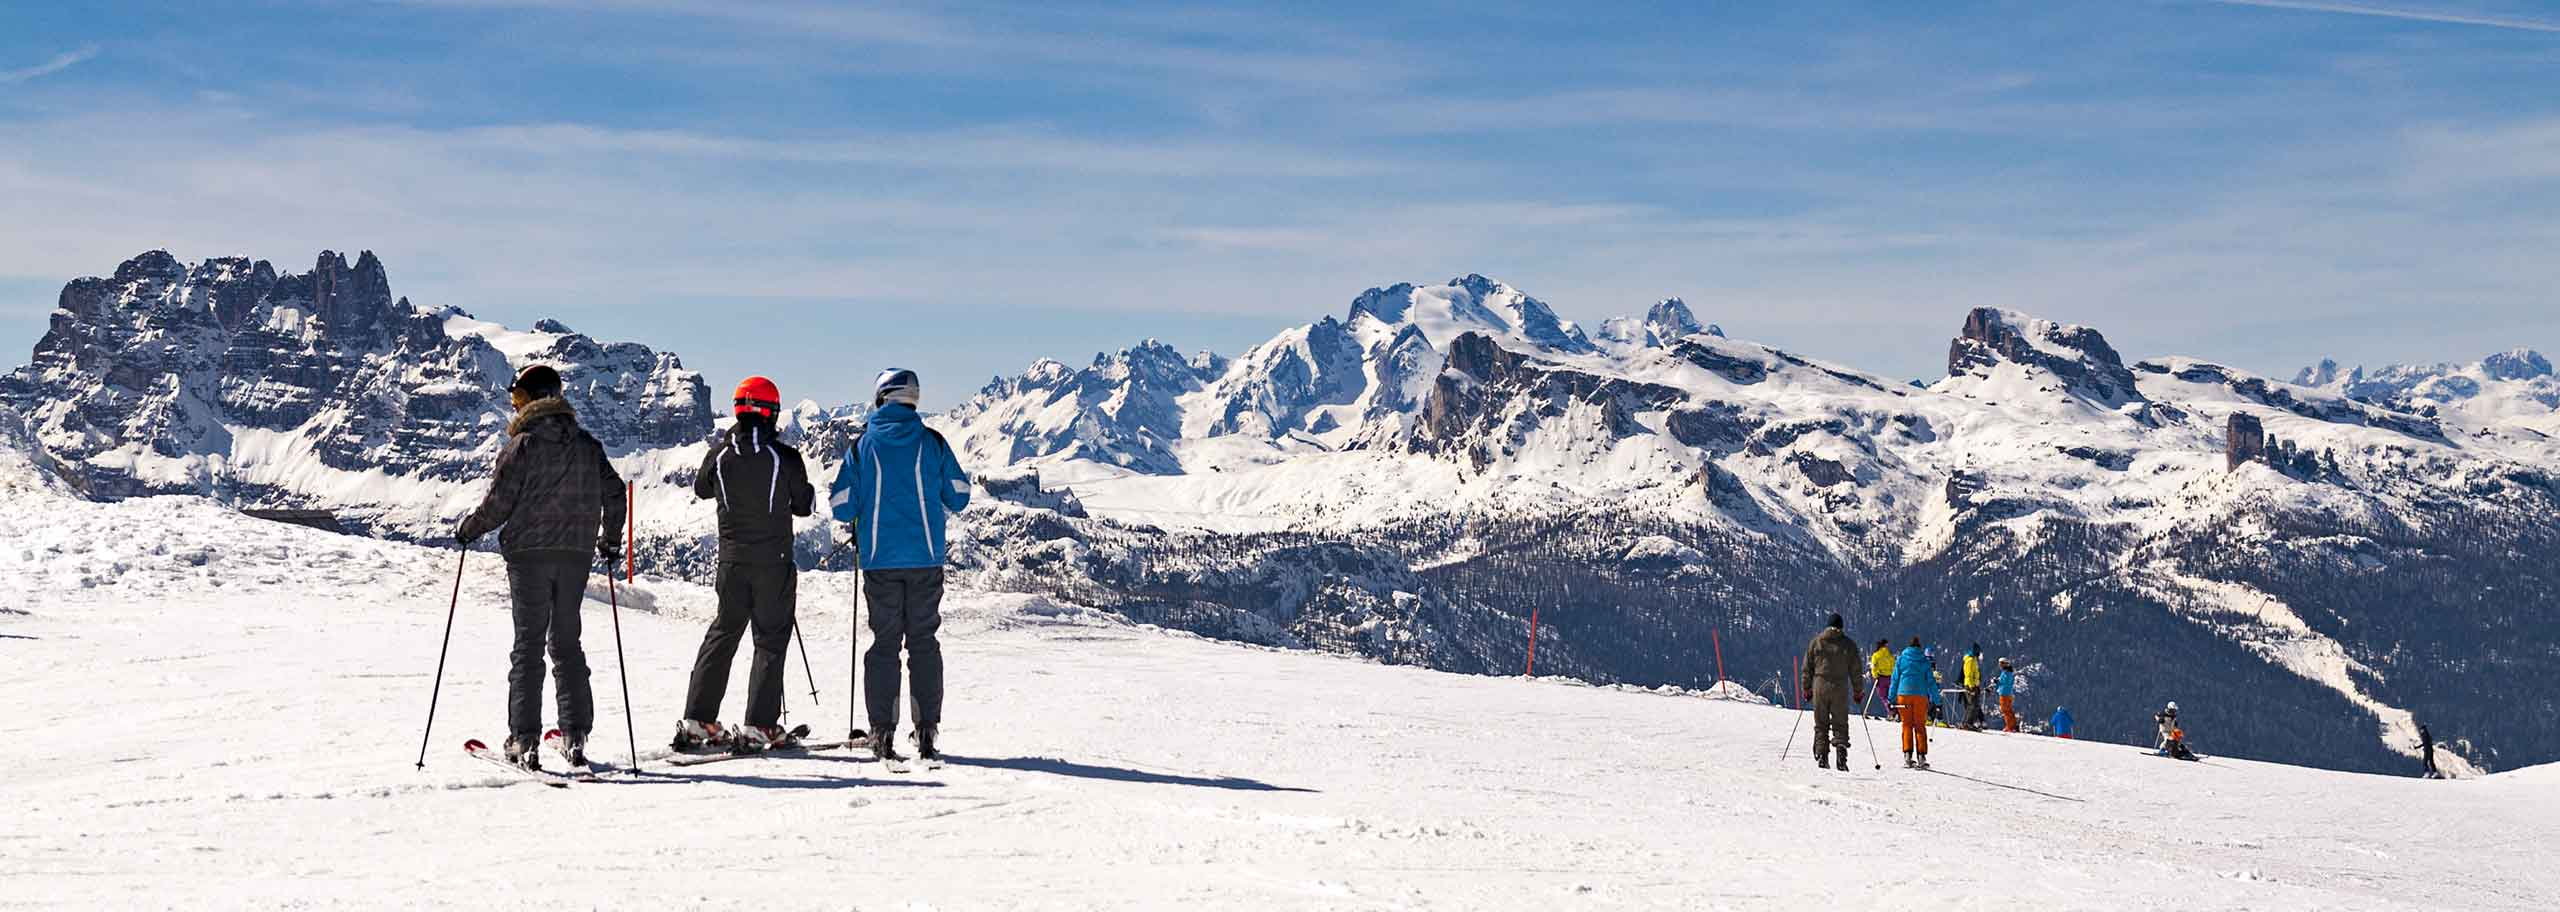 Ski Tour with a Mountain Guide in Cortina d'Ampezzo